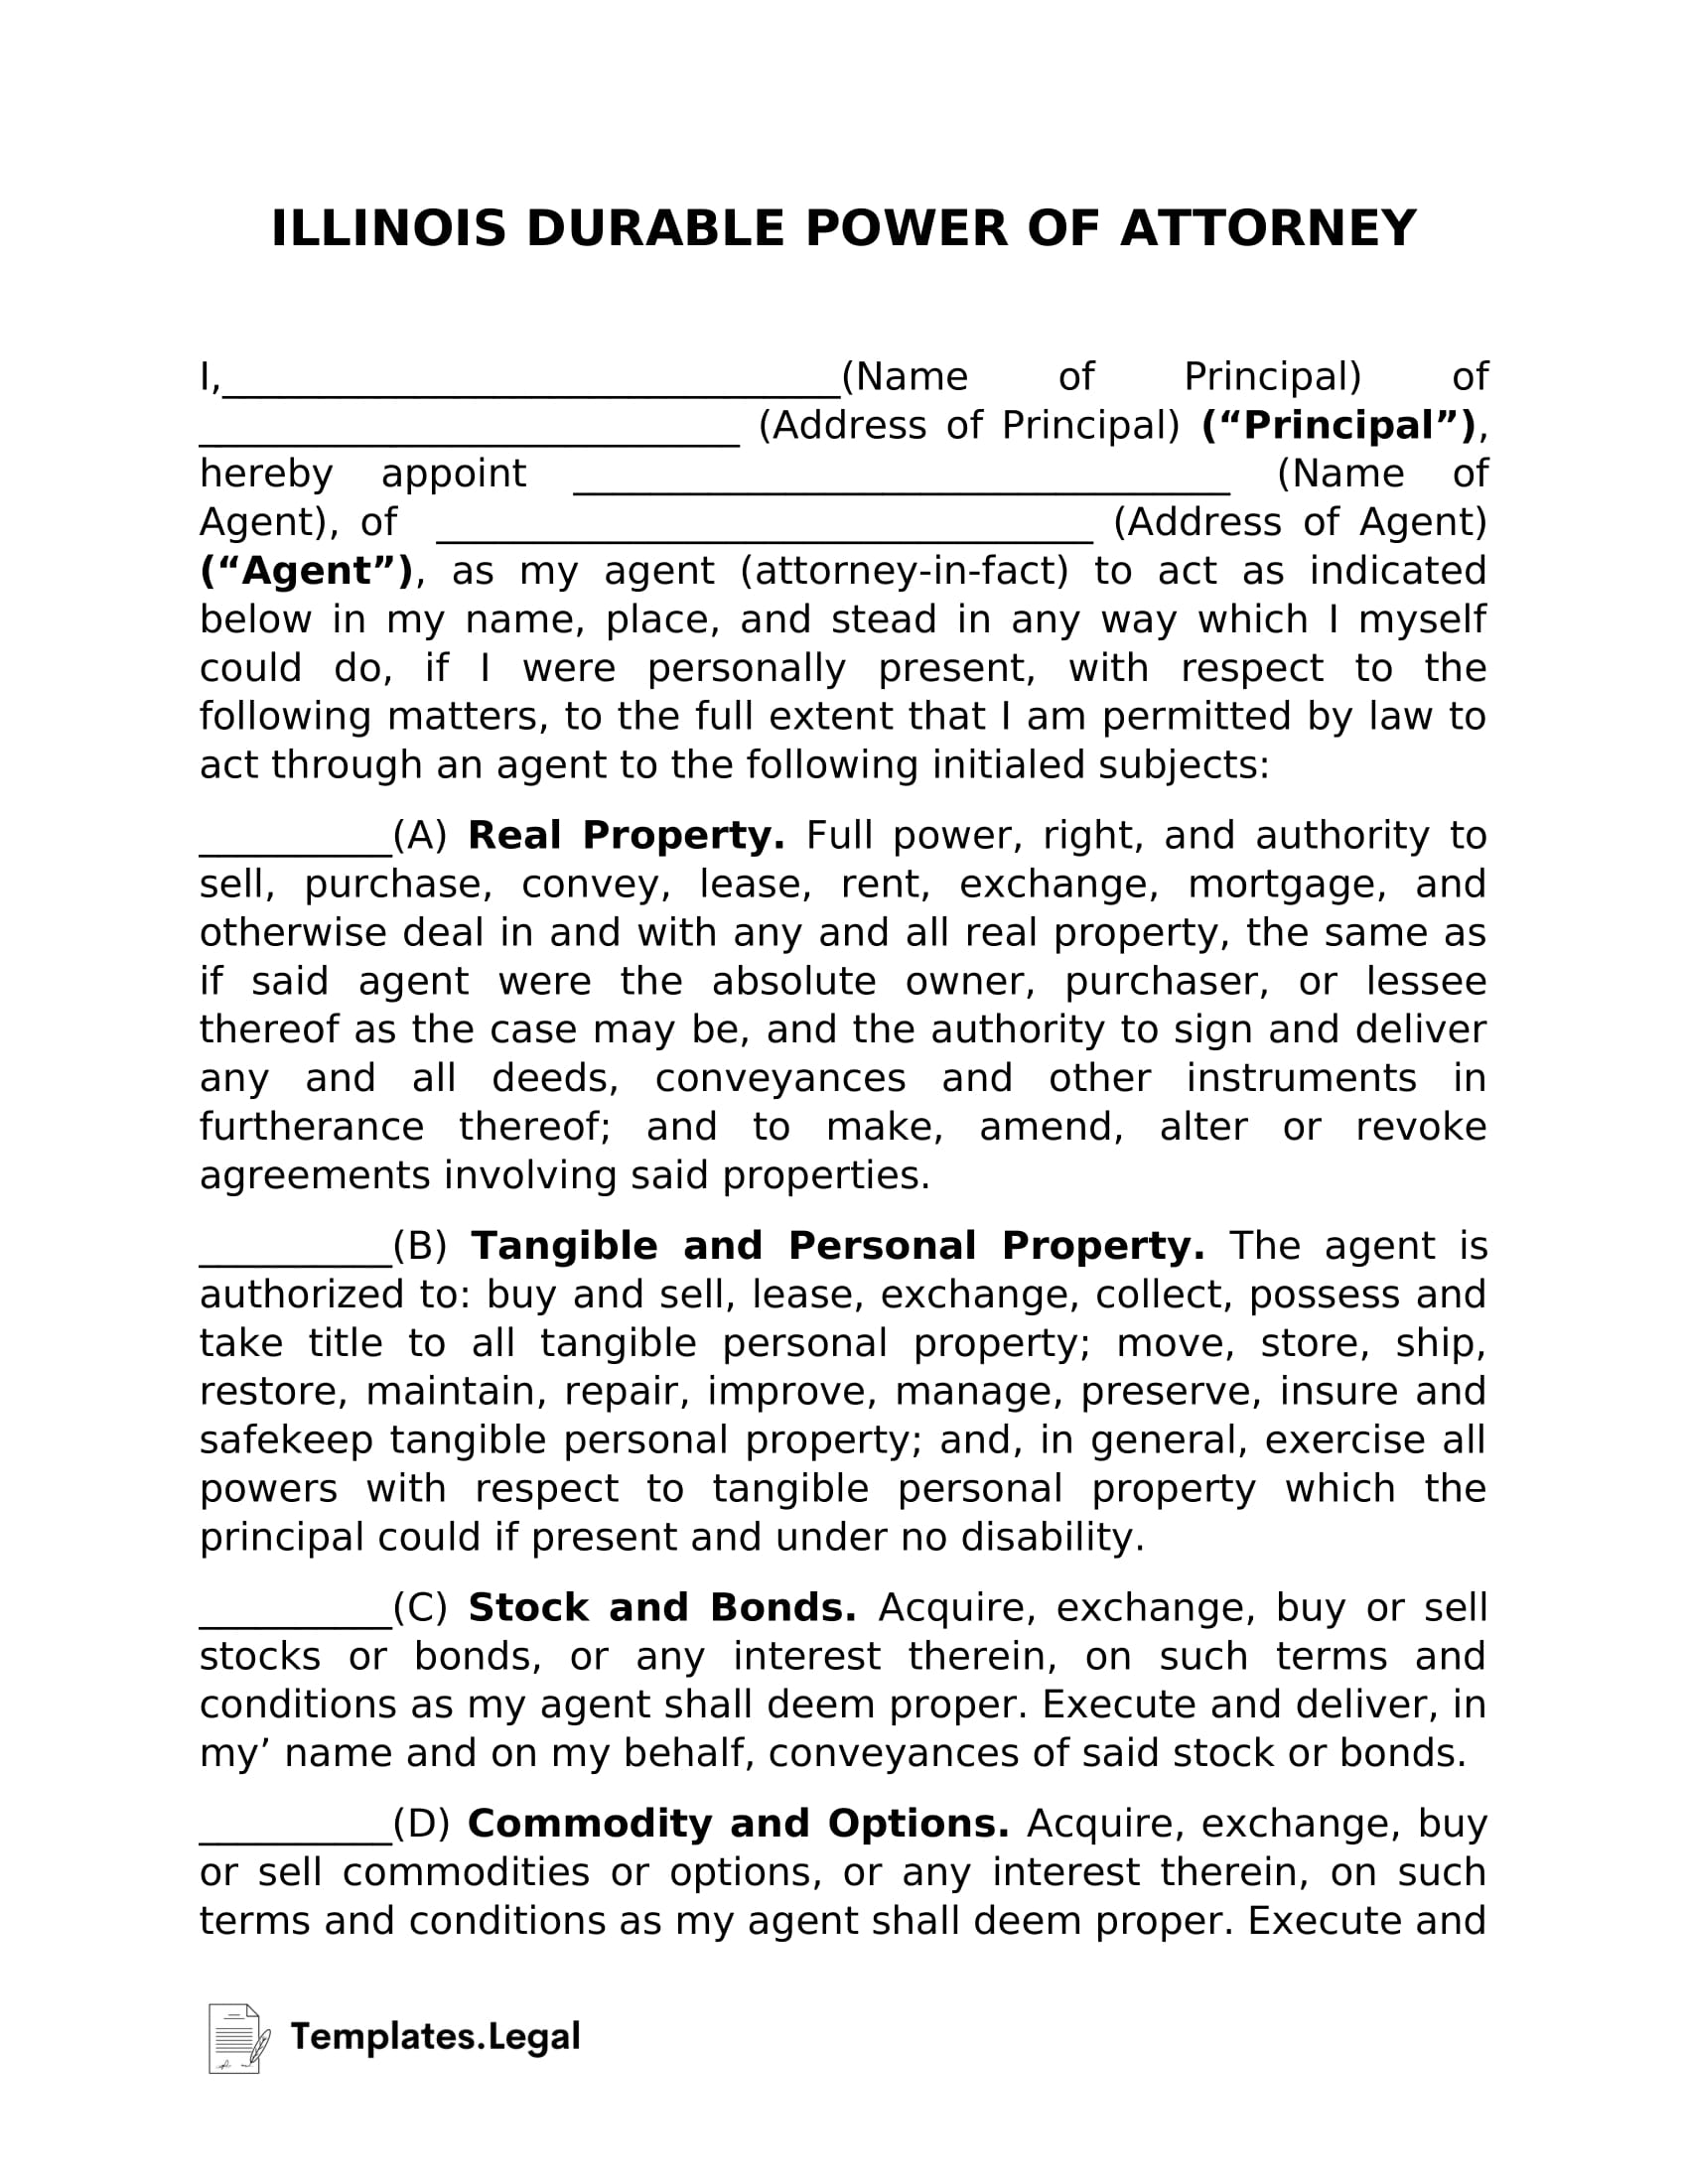 Illinois Durable Power of Attorney - Templates.Legal